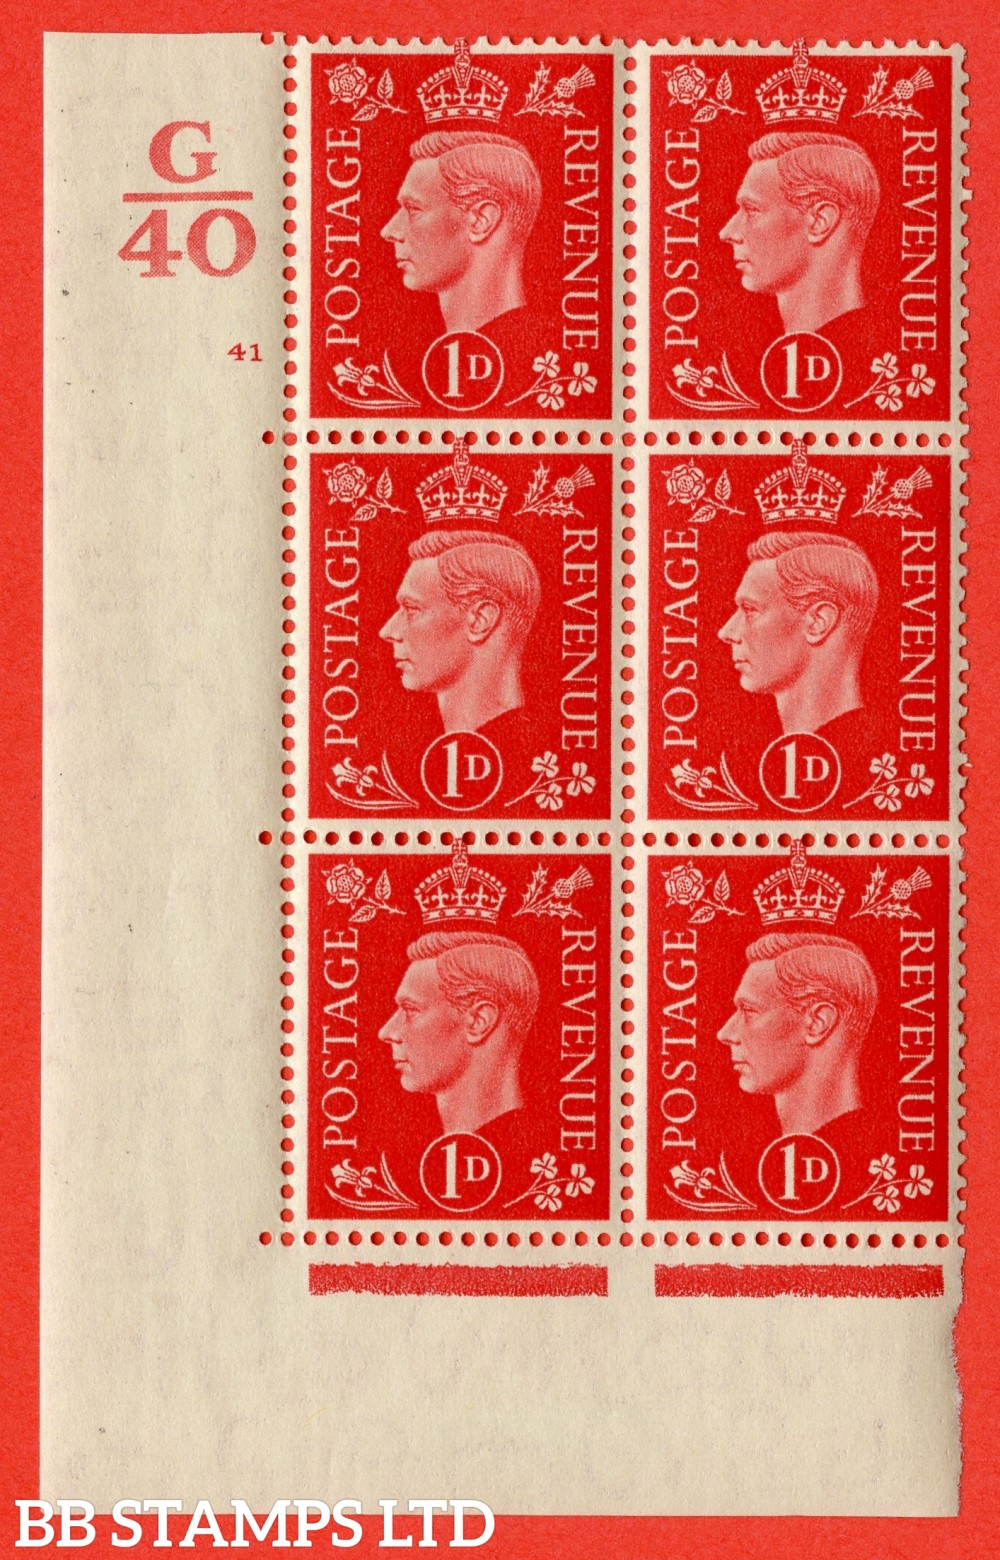 "SG. 463. Q4. 1d Scarlet. A very fine lightly mounted mint "" Control G40 cylinder 41 dot "" block of 6 with perf type 5 E/I with marginal rule."